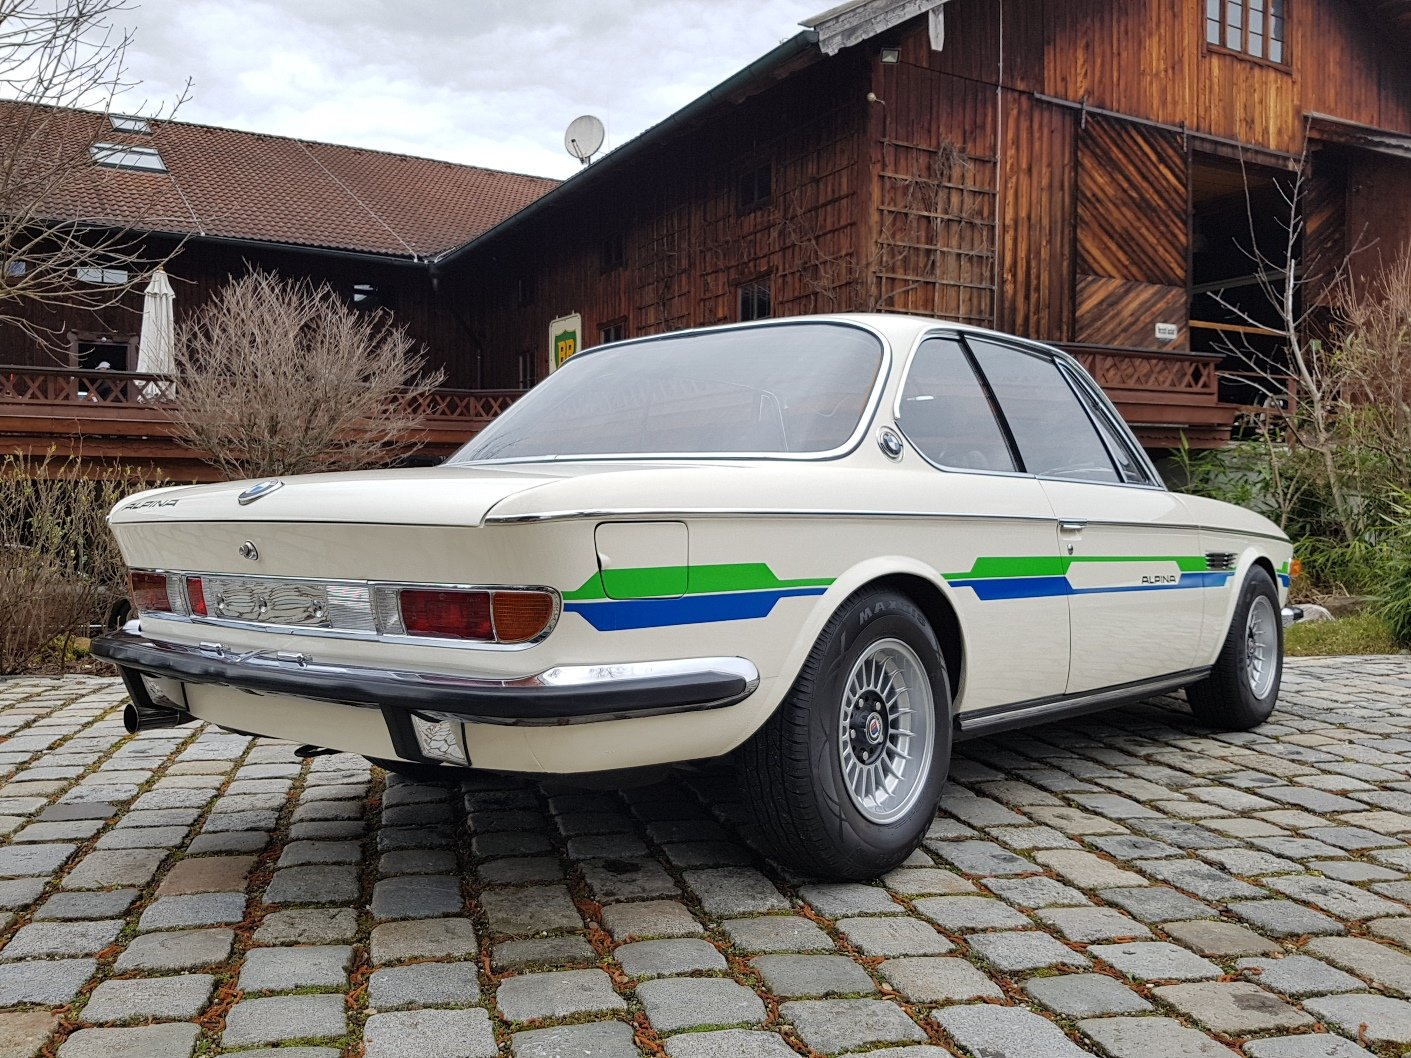 1972 ALPINA B2 3.0 Coupé, 21 years with first owner For Sale (picture 2 of 6)